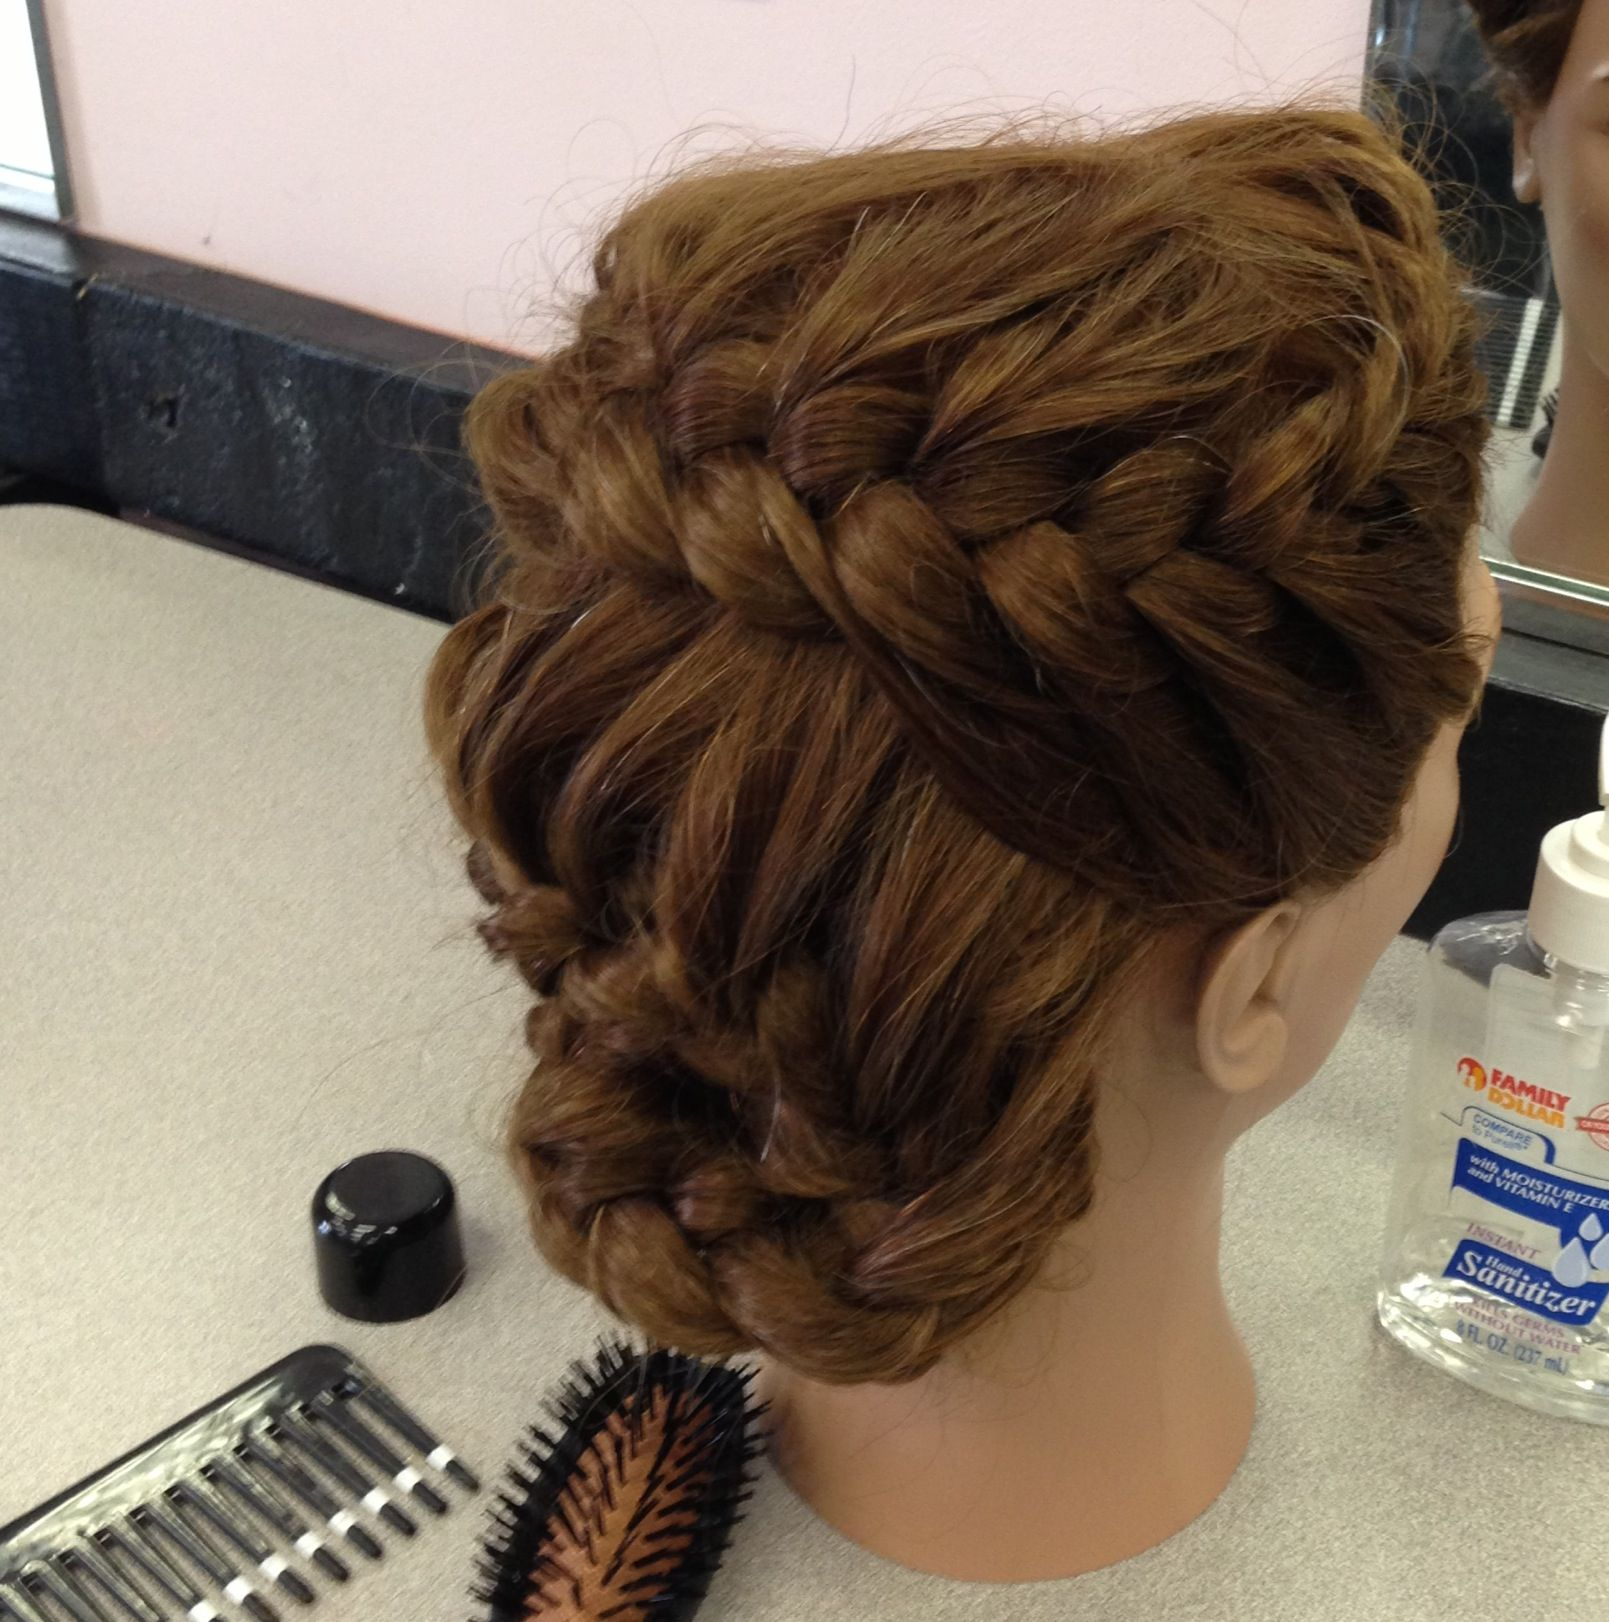 Braids peinados pinterest hair style braid hairstyles and makeup